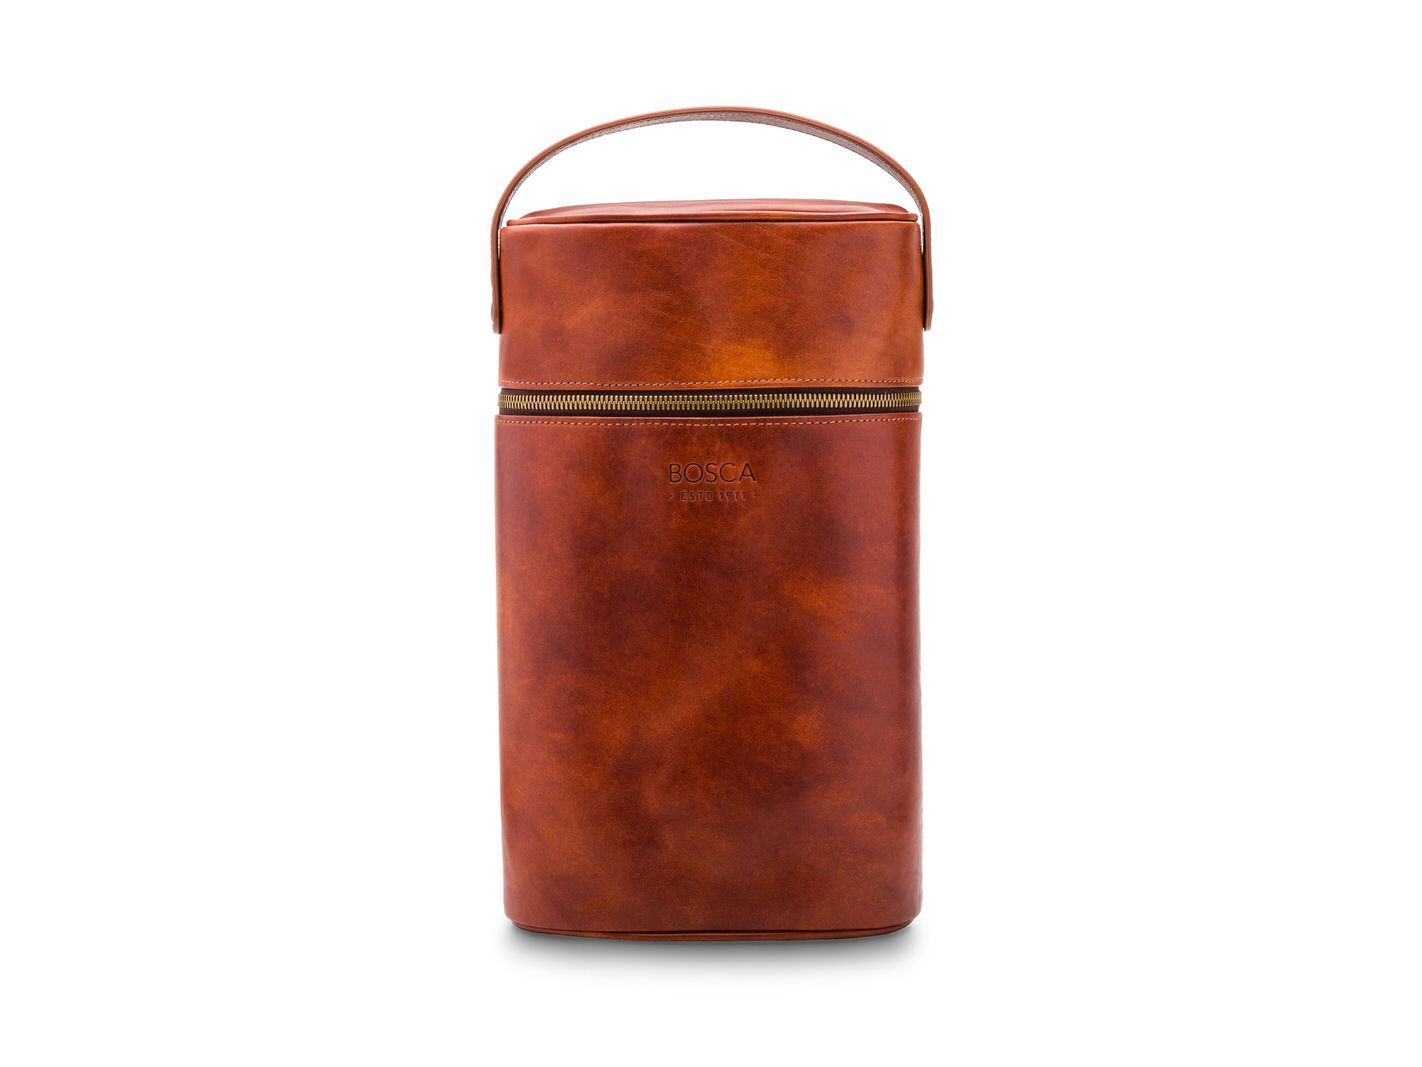 BOSCA 1911 LEATHER TWO BOTTLE WINE CASE - LIGHT BROWN